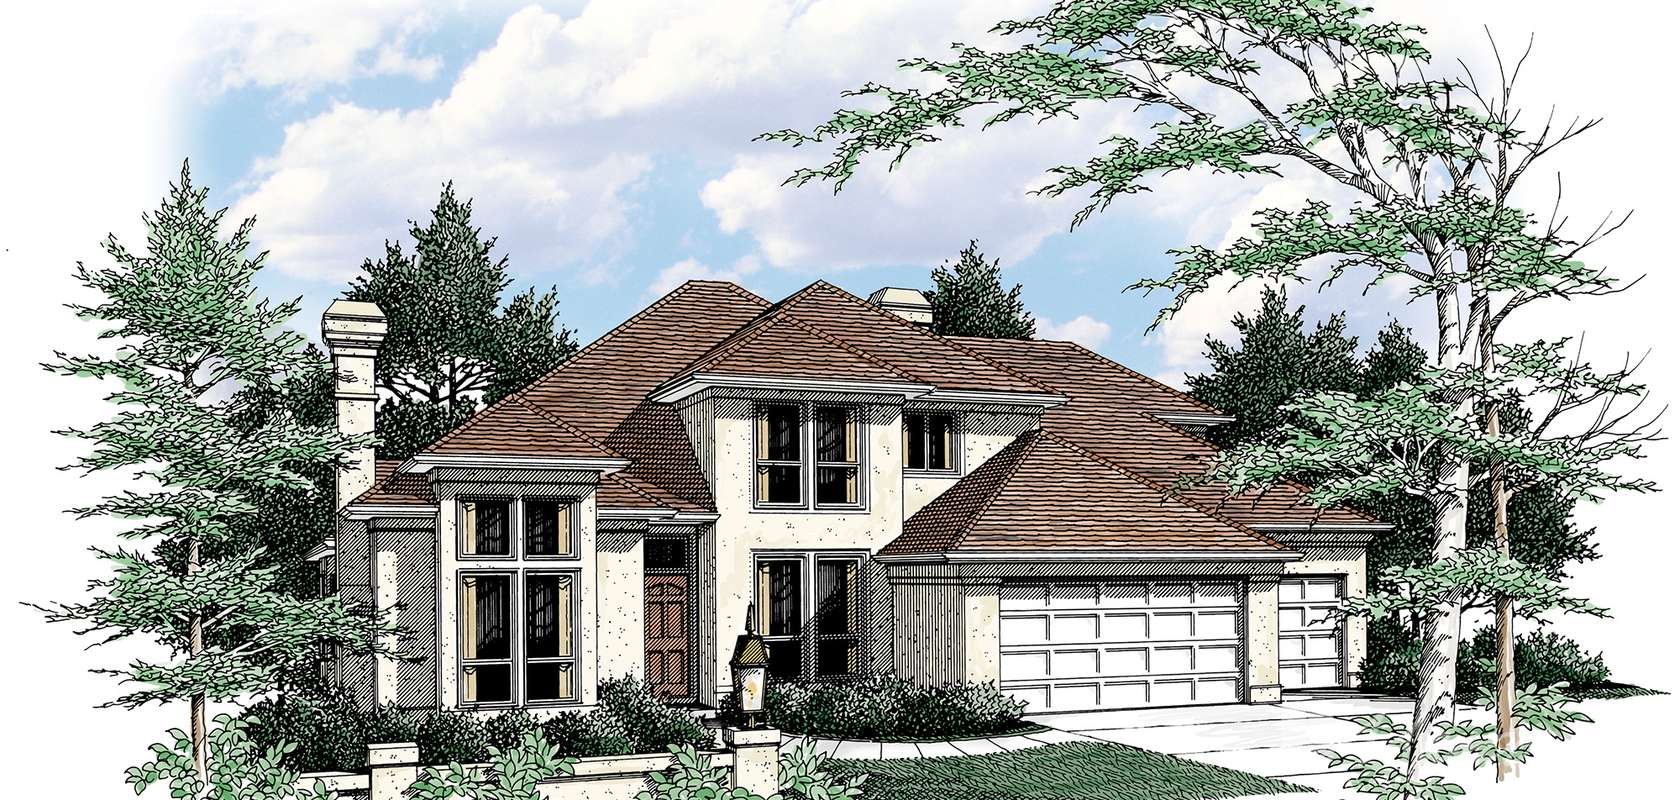 Mascord House Plan 2213DC: The Duson